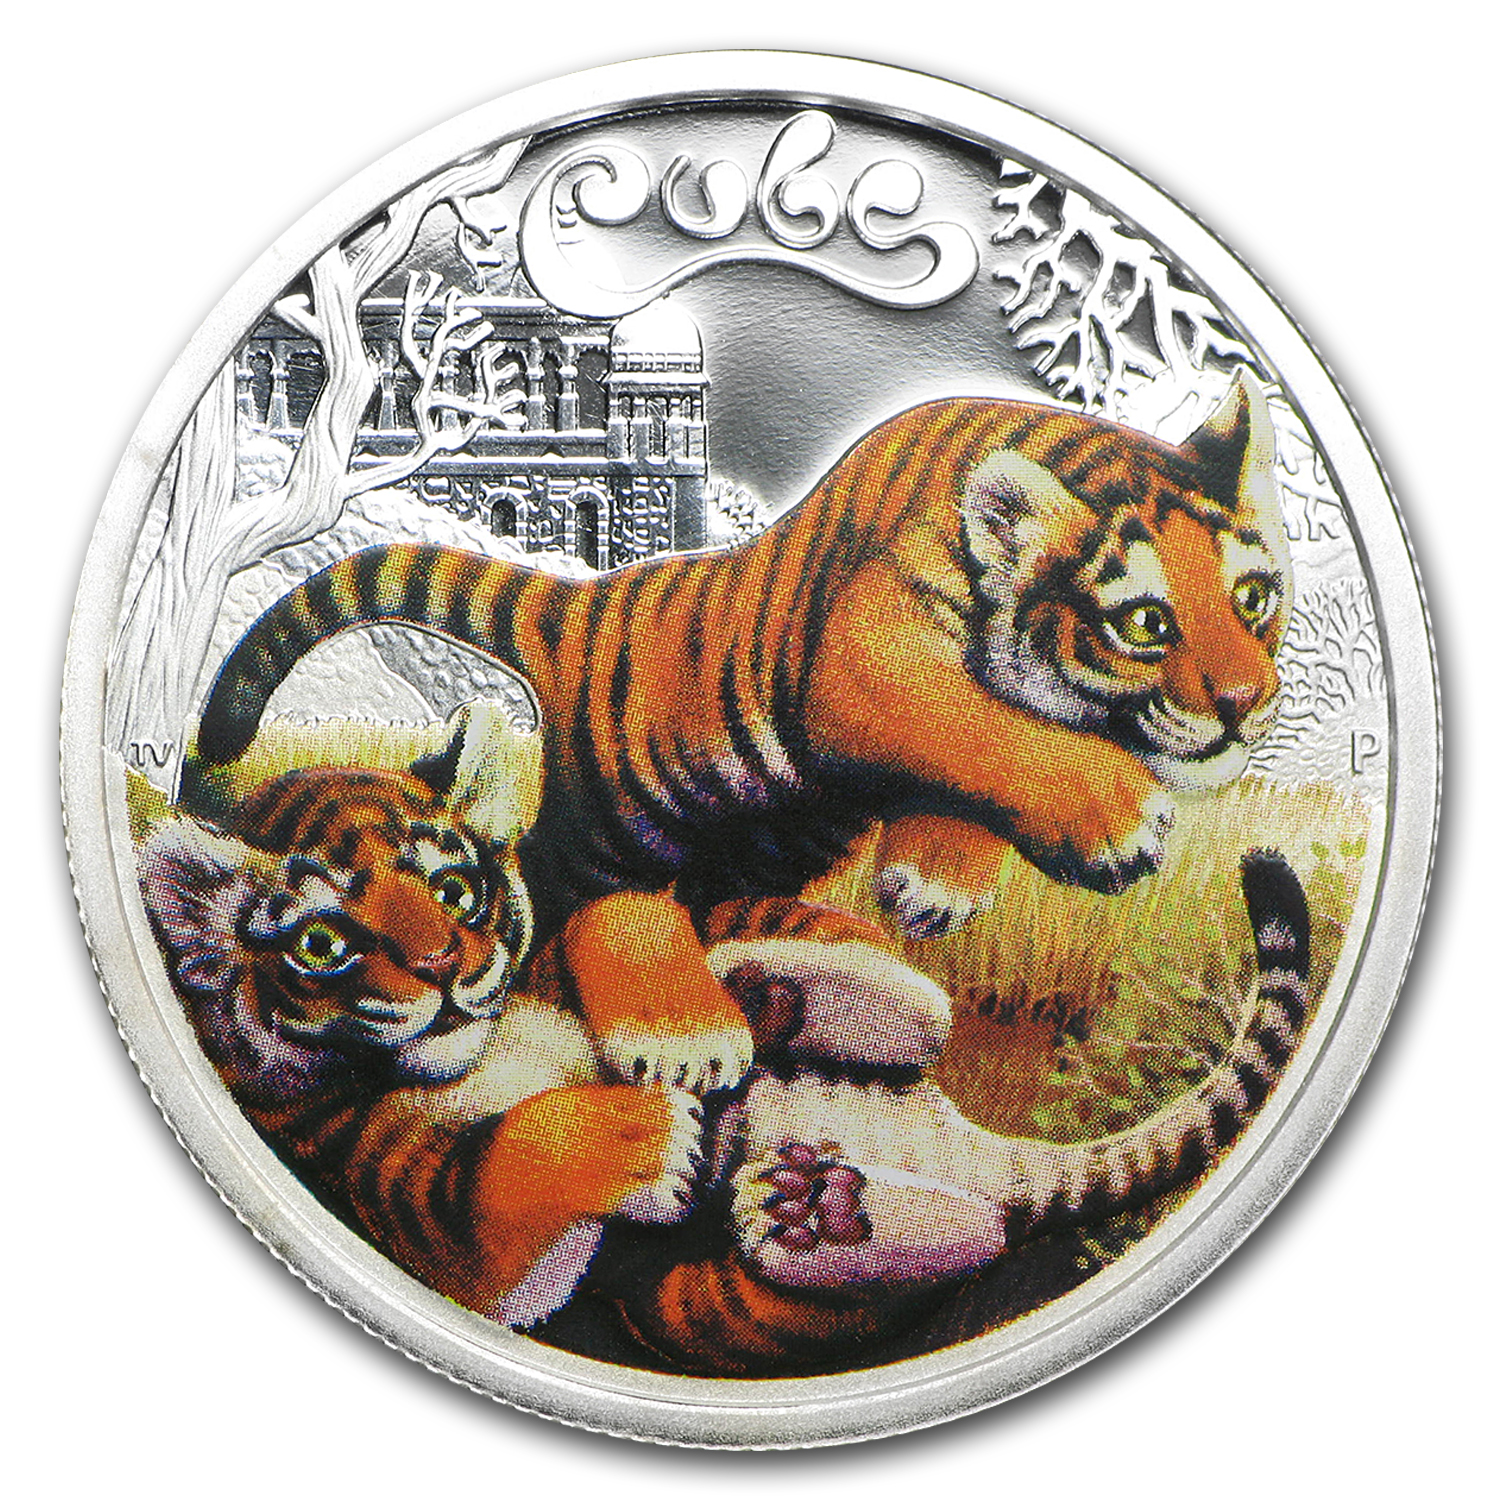 2016 Tuvalu 1/2 oz Silver Proof Tiger Cubs